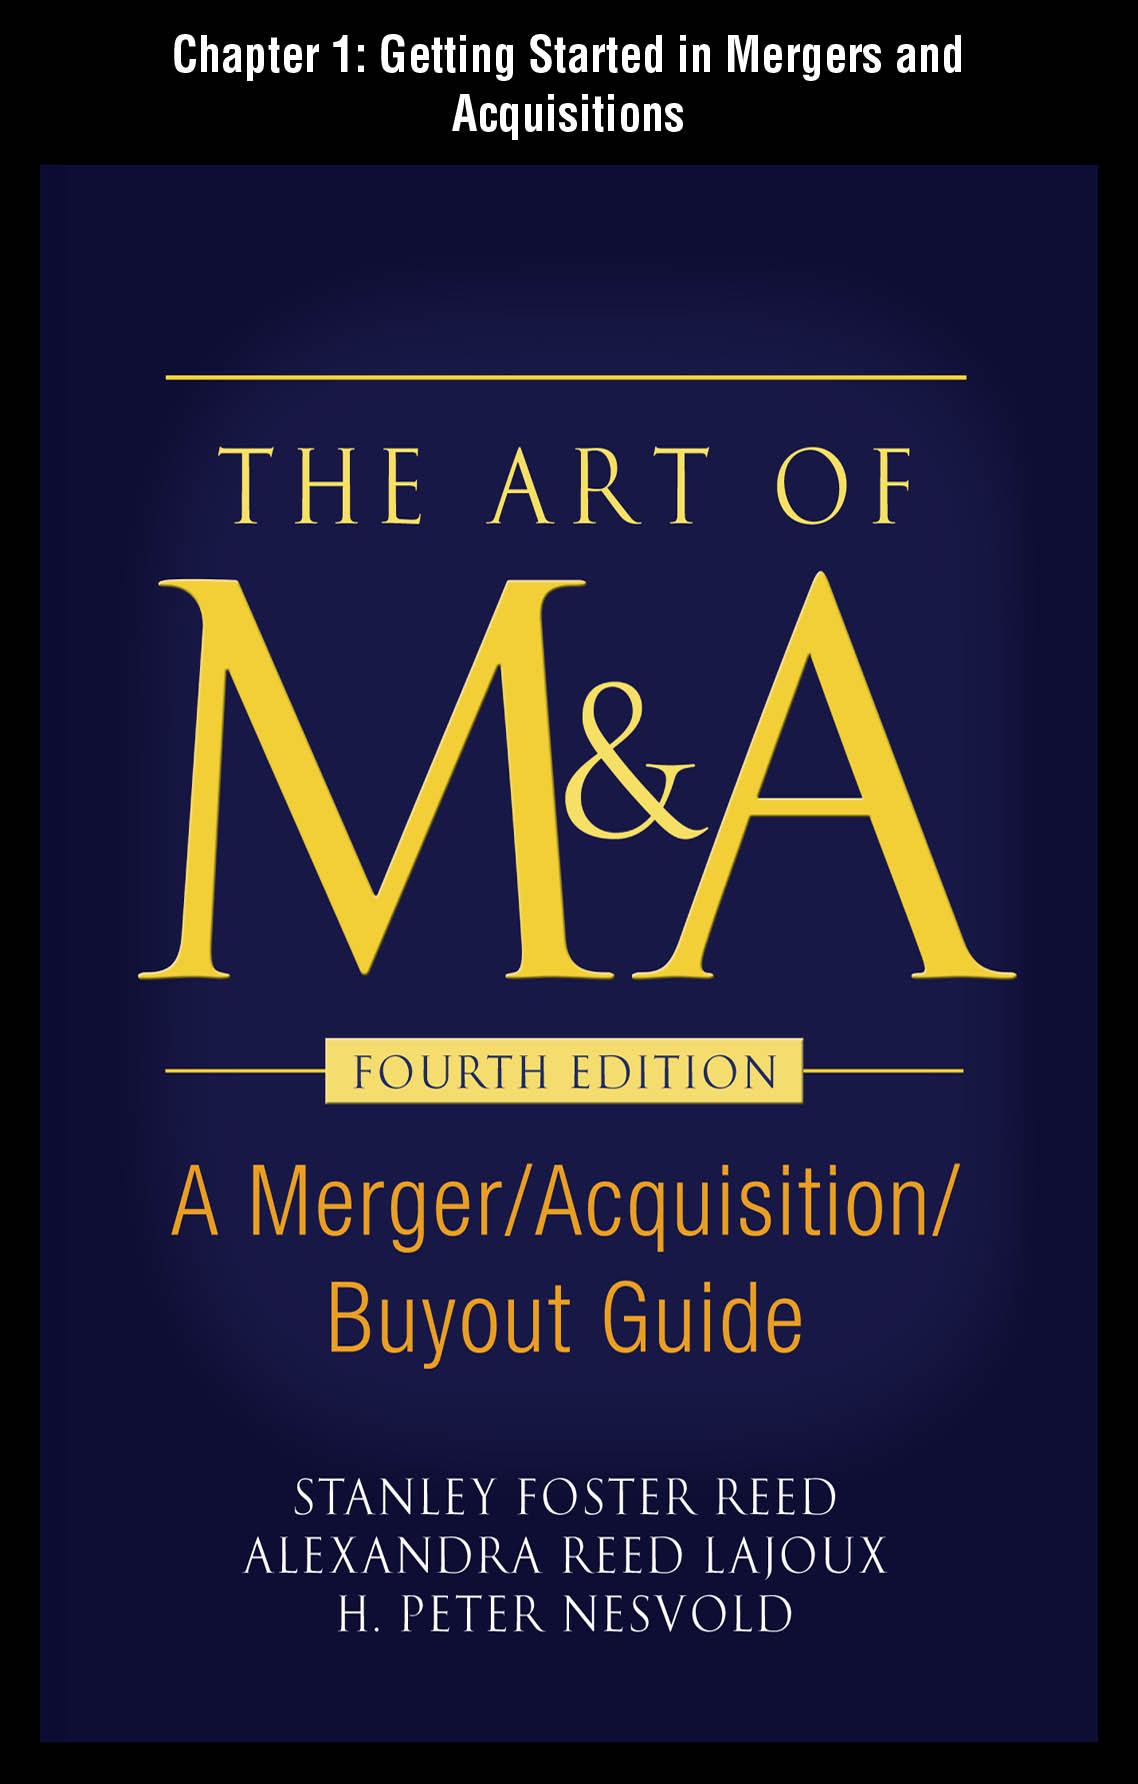 The Art of M&A, Fourth Edition, Chapter 1 - Getting Started In Mergers and Acquisitions